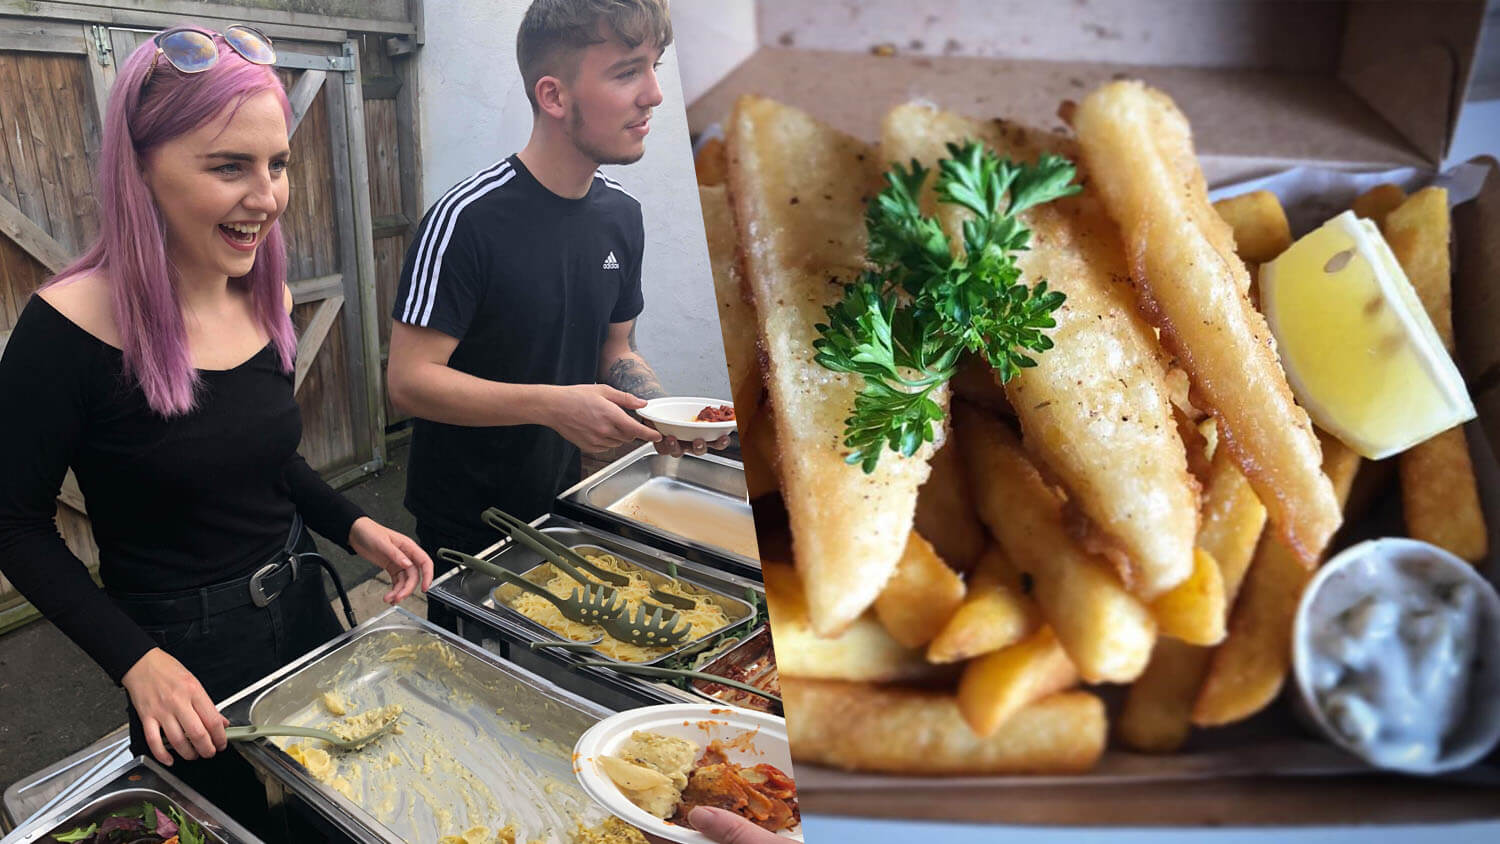 22-Year-Old Launches Vegan and Gluten-Free Comfort Food Takeway Vego Foods in Padbury